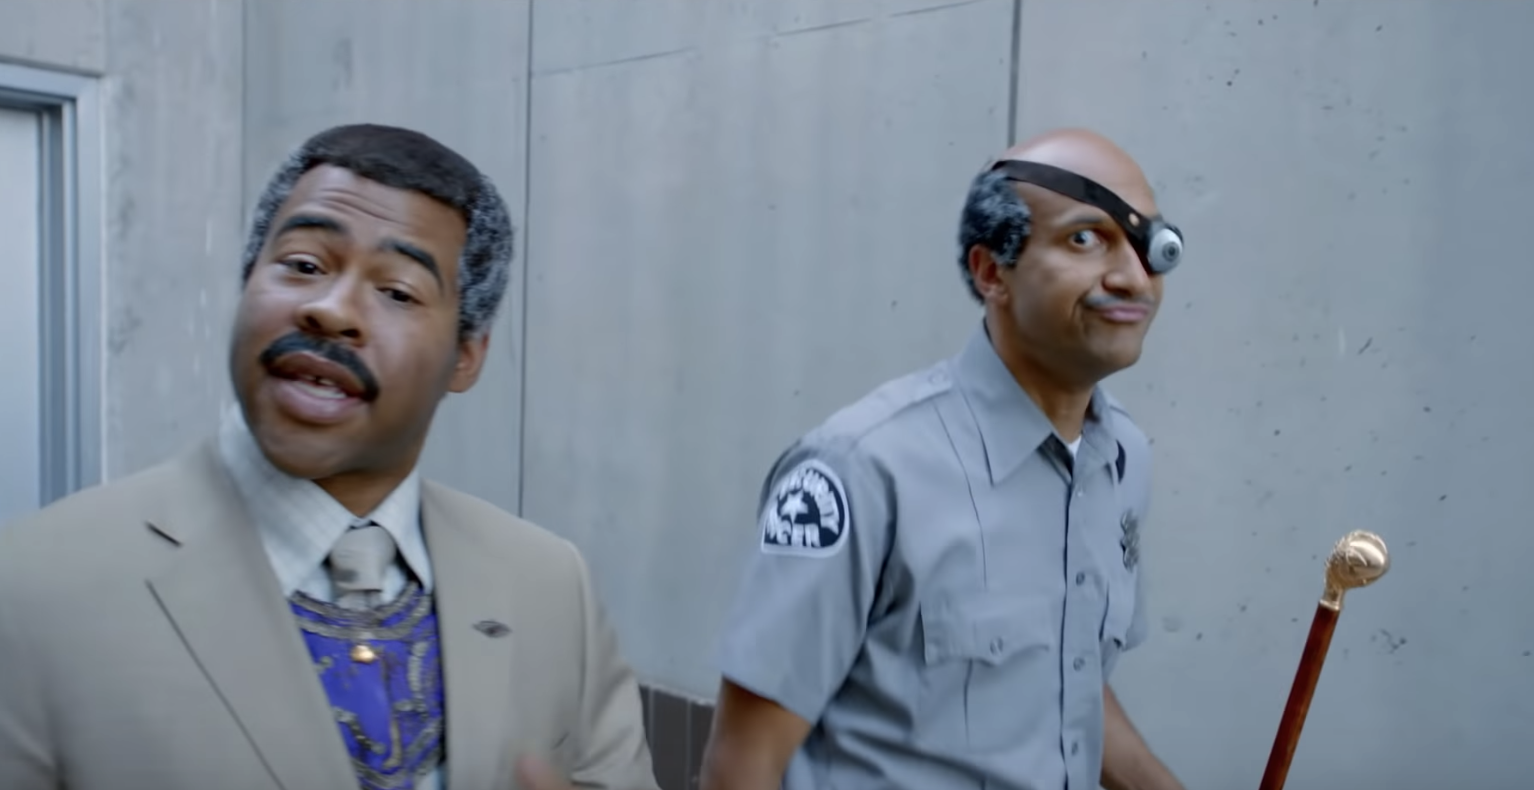 Key & Peele Imagine Hogwarts As An Inner City School, And Hoo Boy